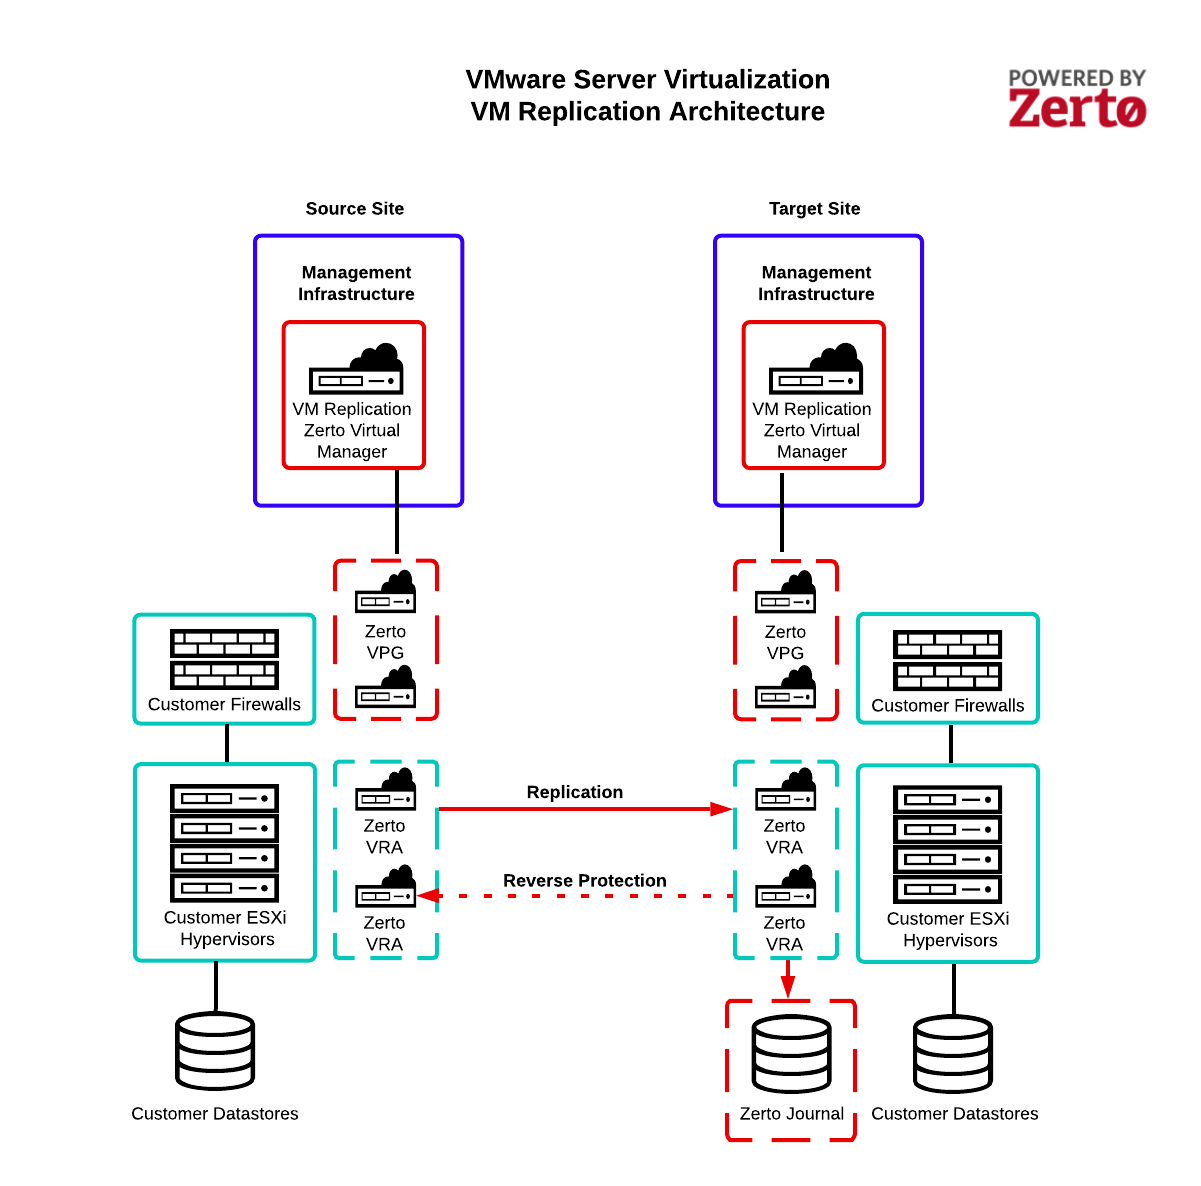 VM Replication architecture diagram